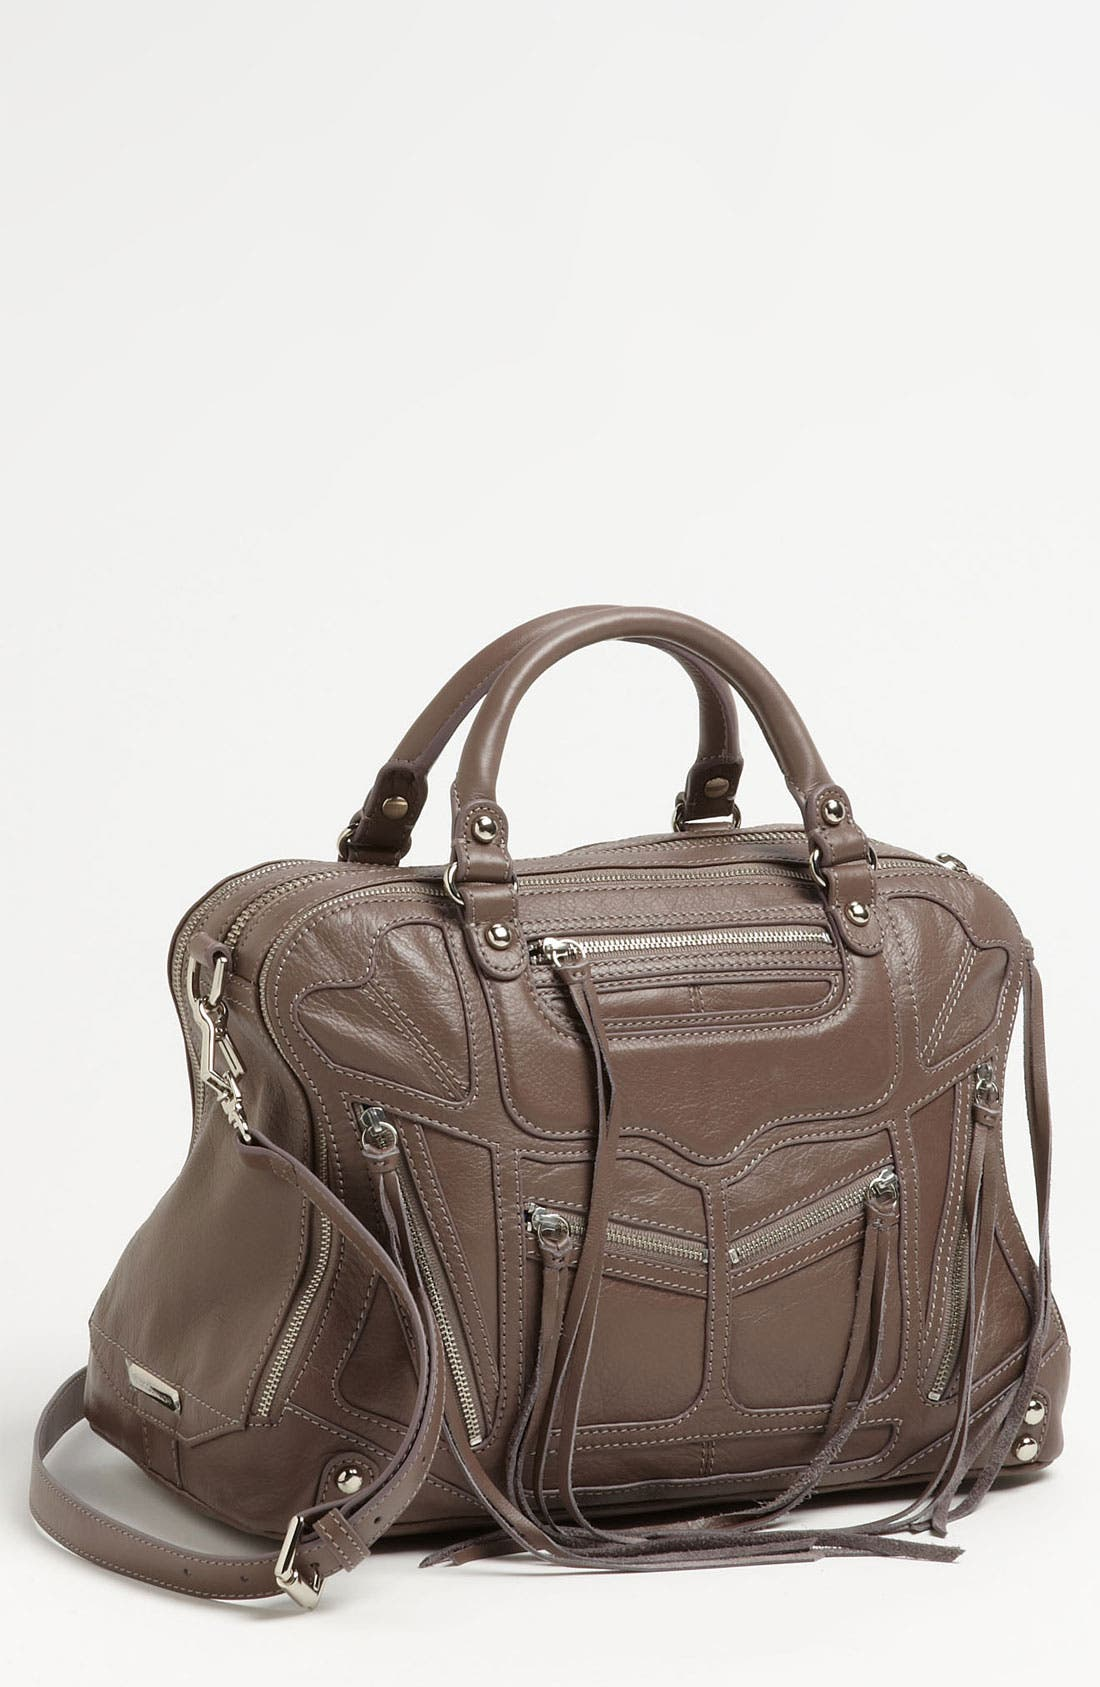 Alternate Image 1 Selected - Rebecca Minkoff 'Jealous' Satchel